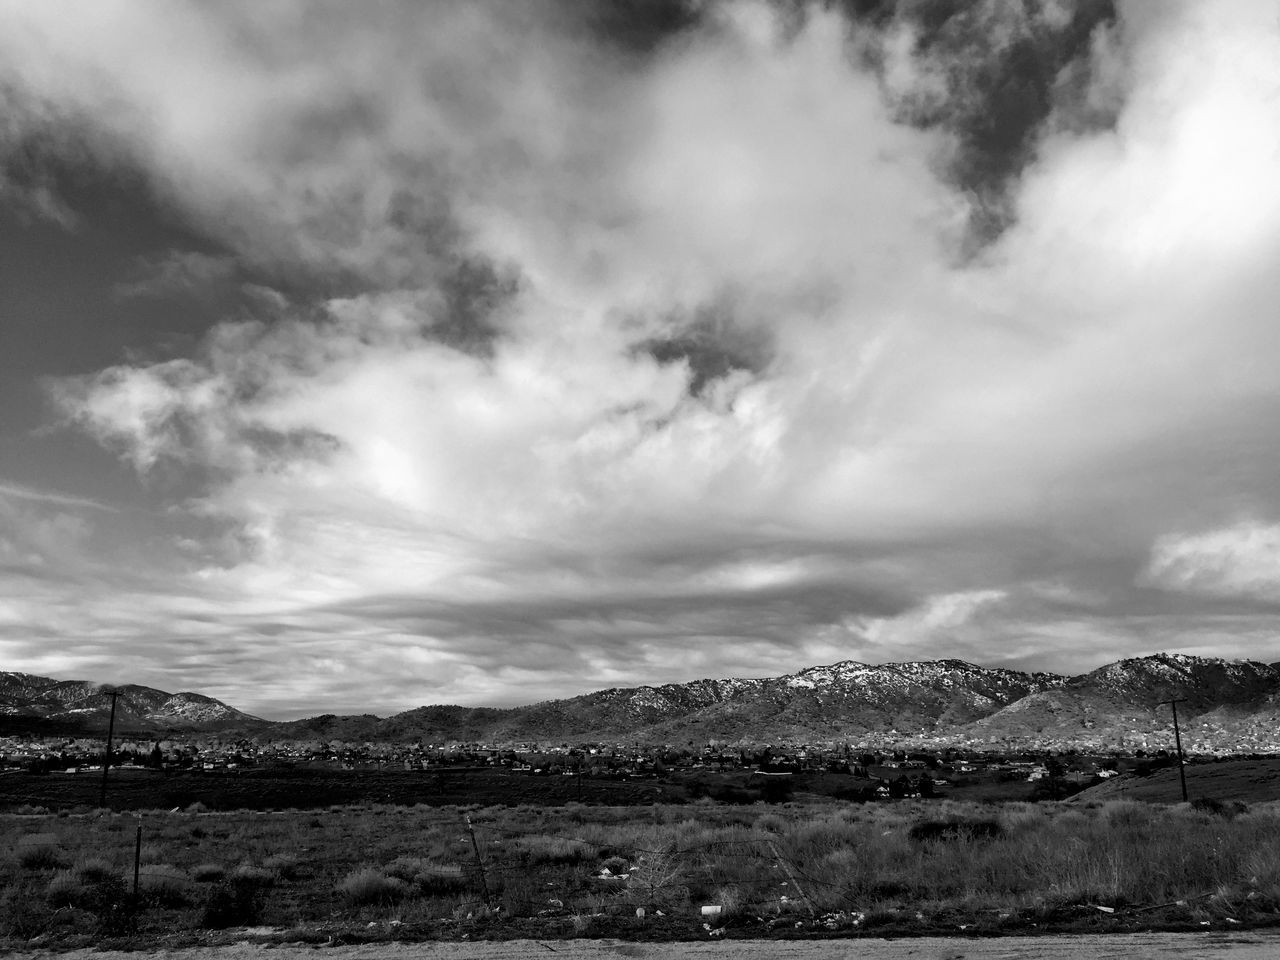 """Tehachapi"" The small town of Tehachapi, California, USA sits at the feet of mountains and clouds. Clouds And Sky Clouds Cloudscape Mountains Winter Snow Blackandwhite Black And White Blackandwhite Photography Black And White Photography"